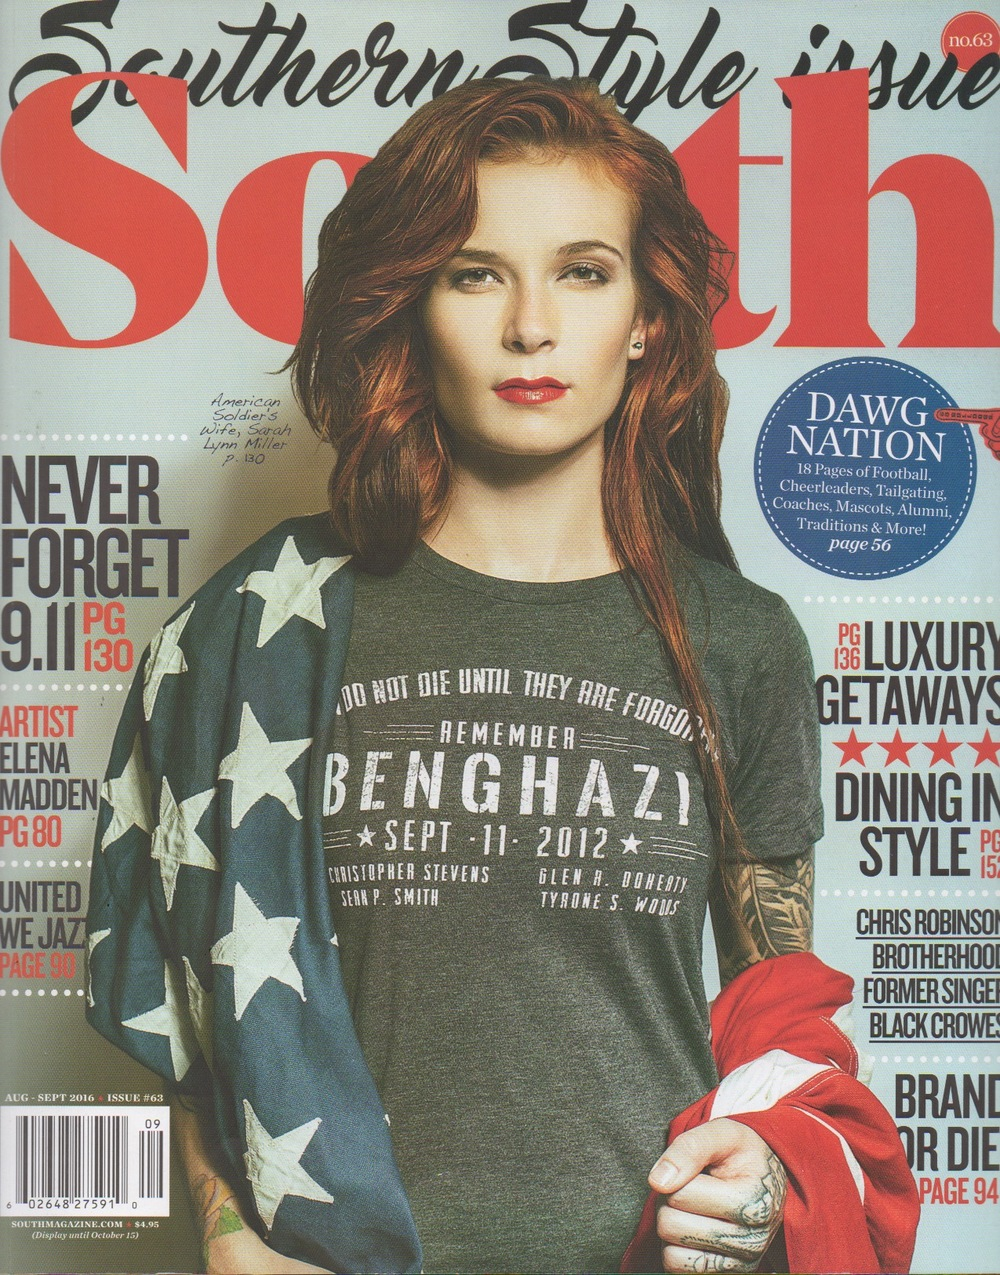 South Magazine August/September 2016